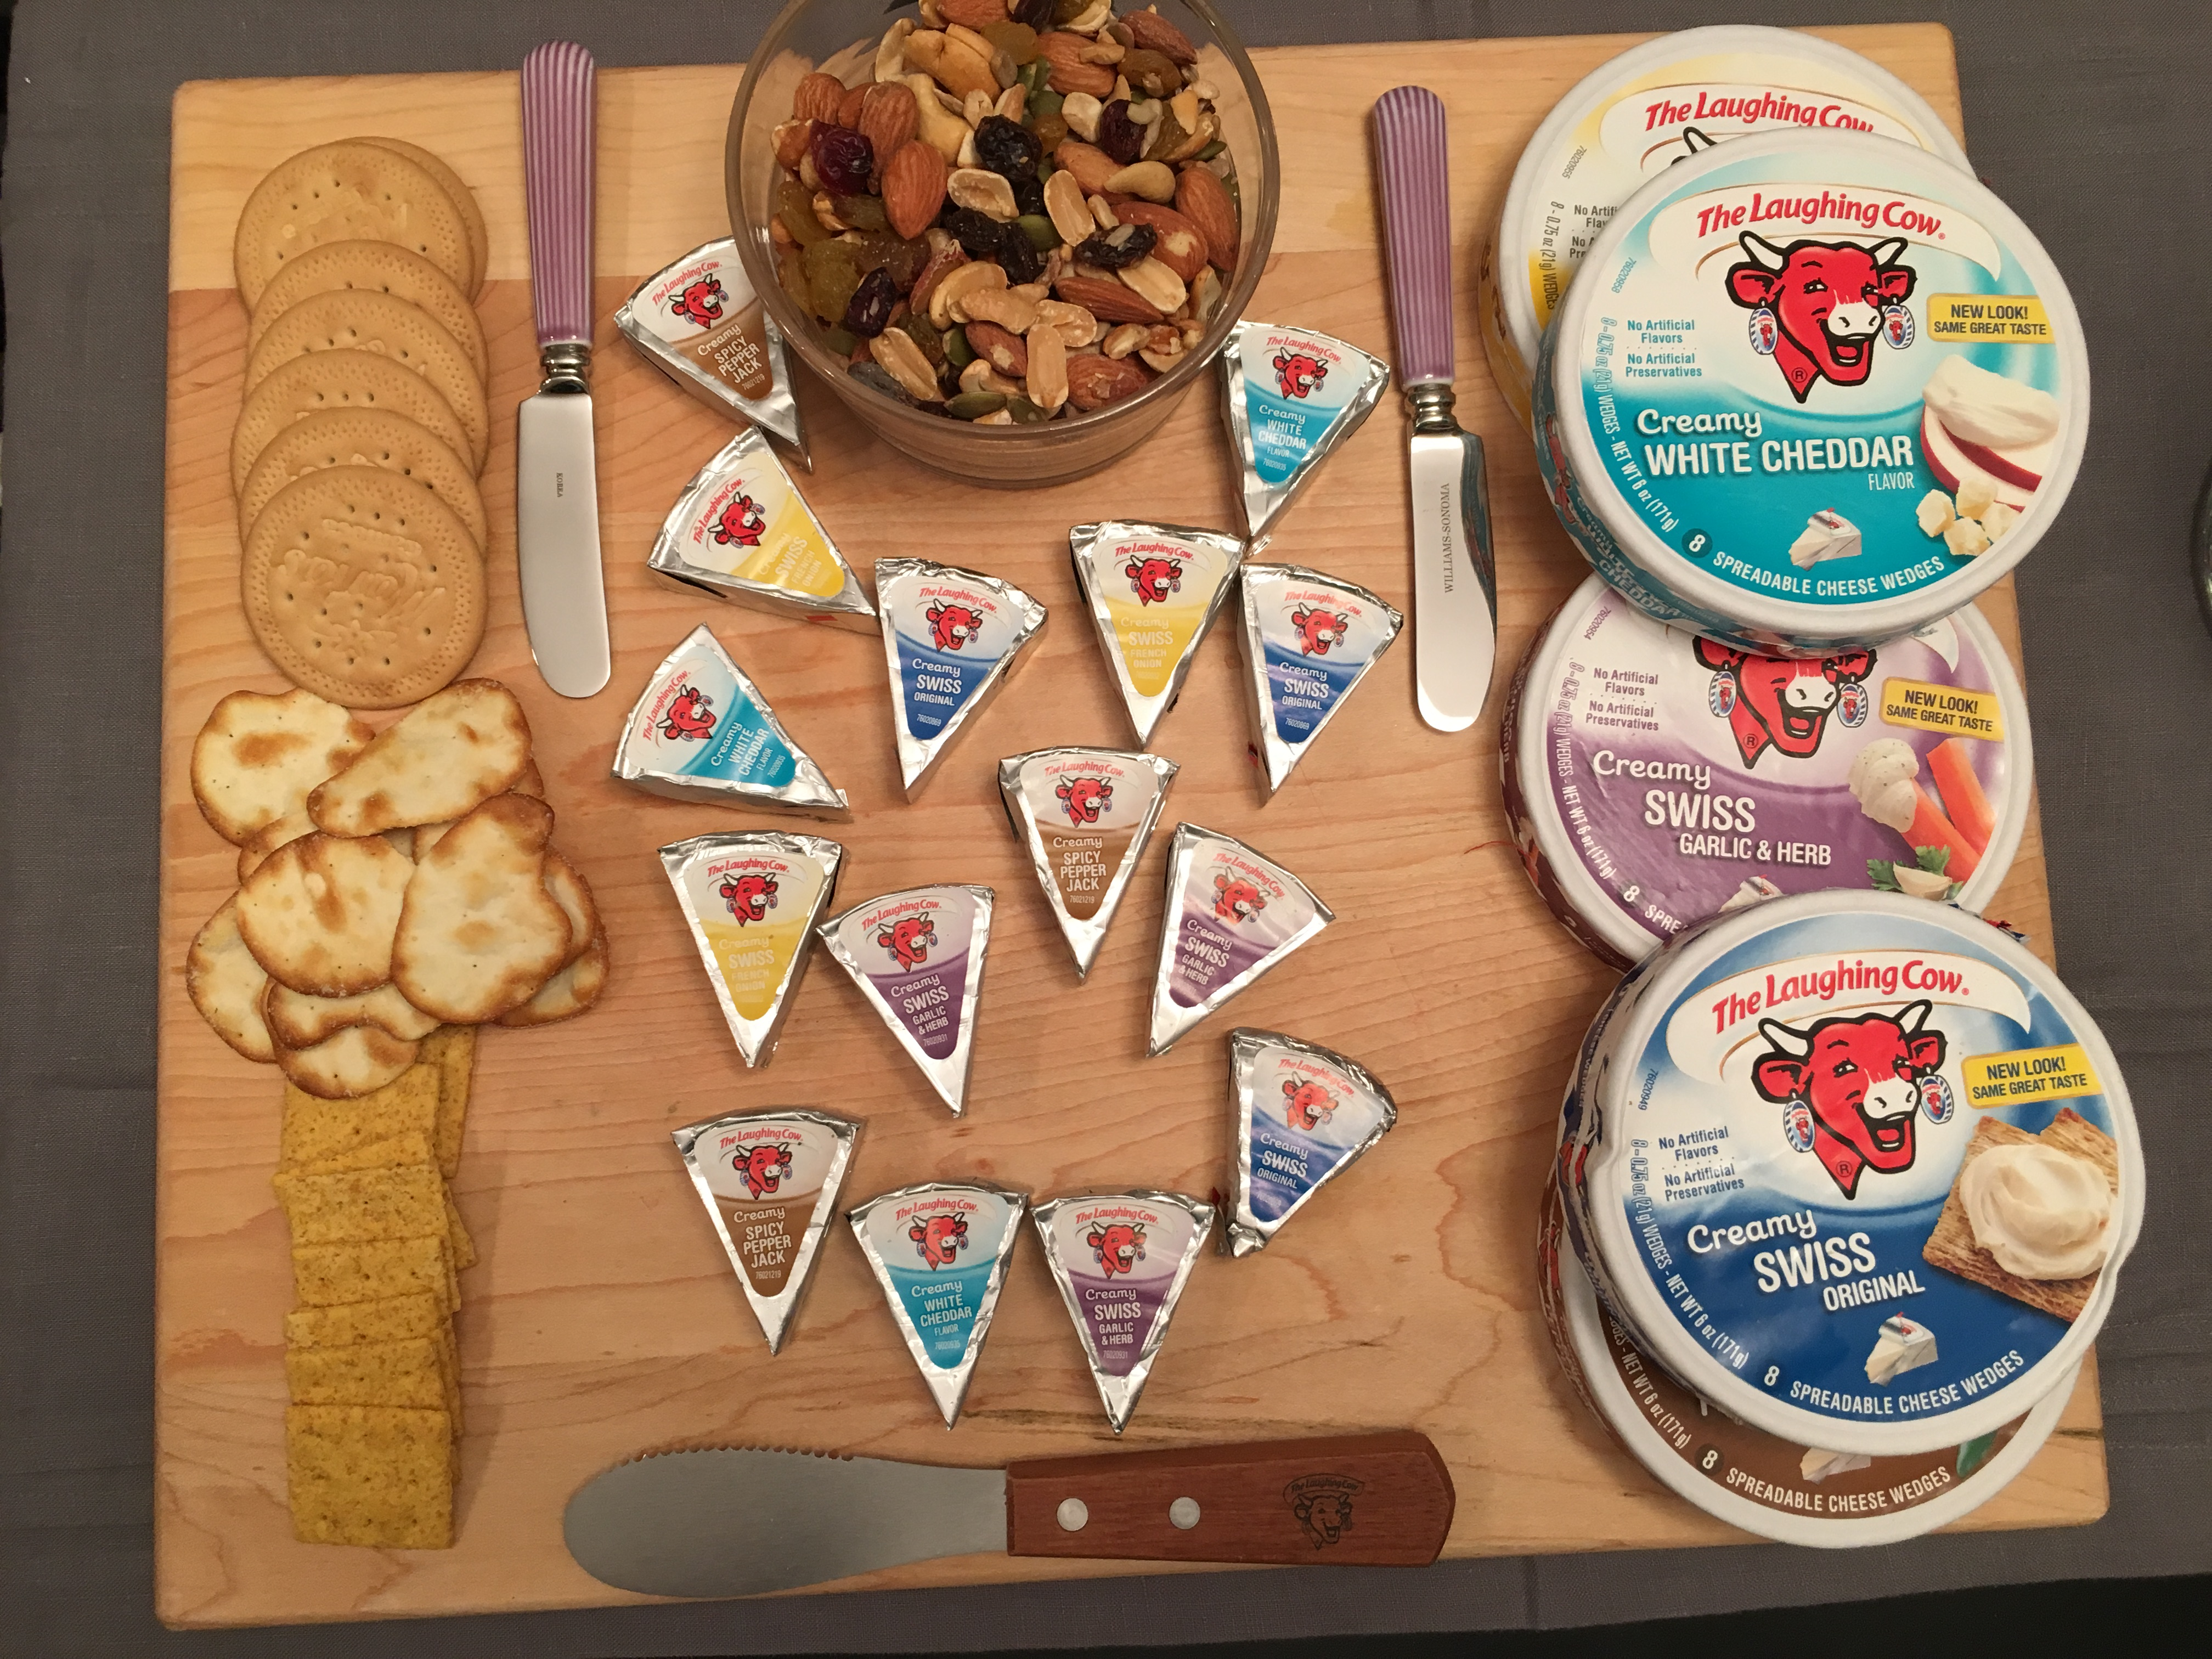 Inspiring Kitchen Creative Snacking with The Laughing Cow